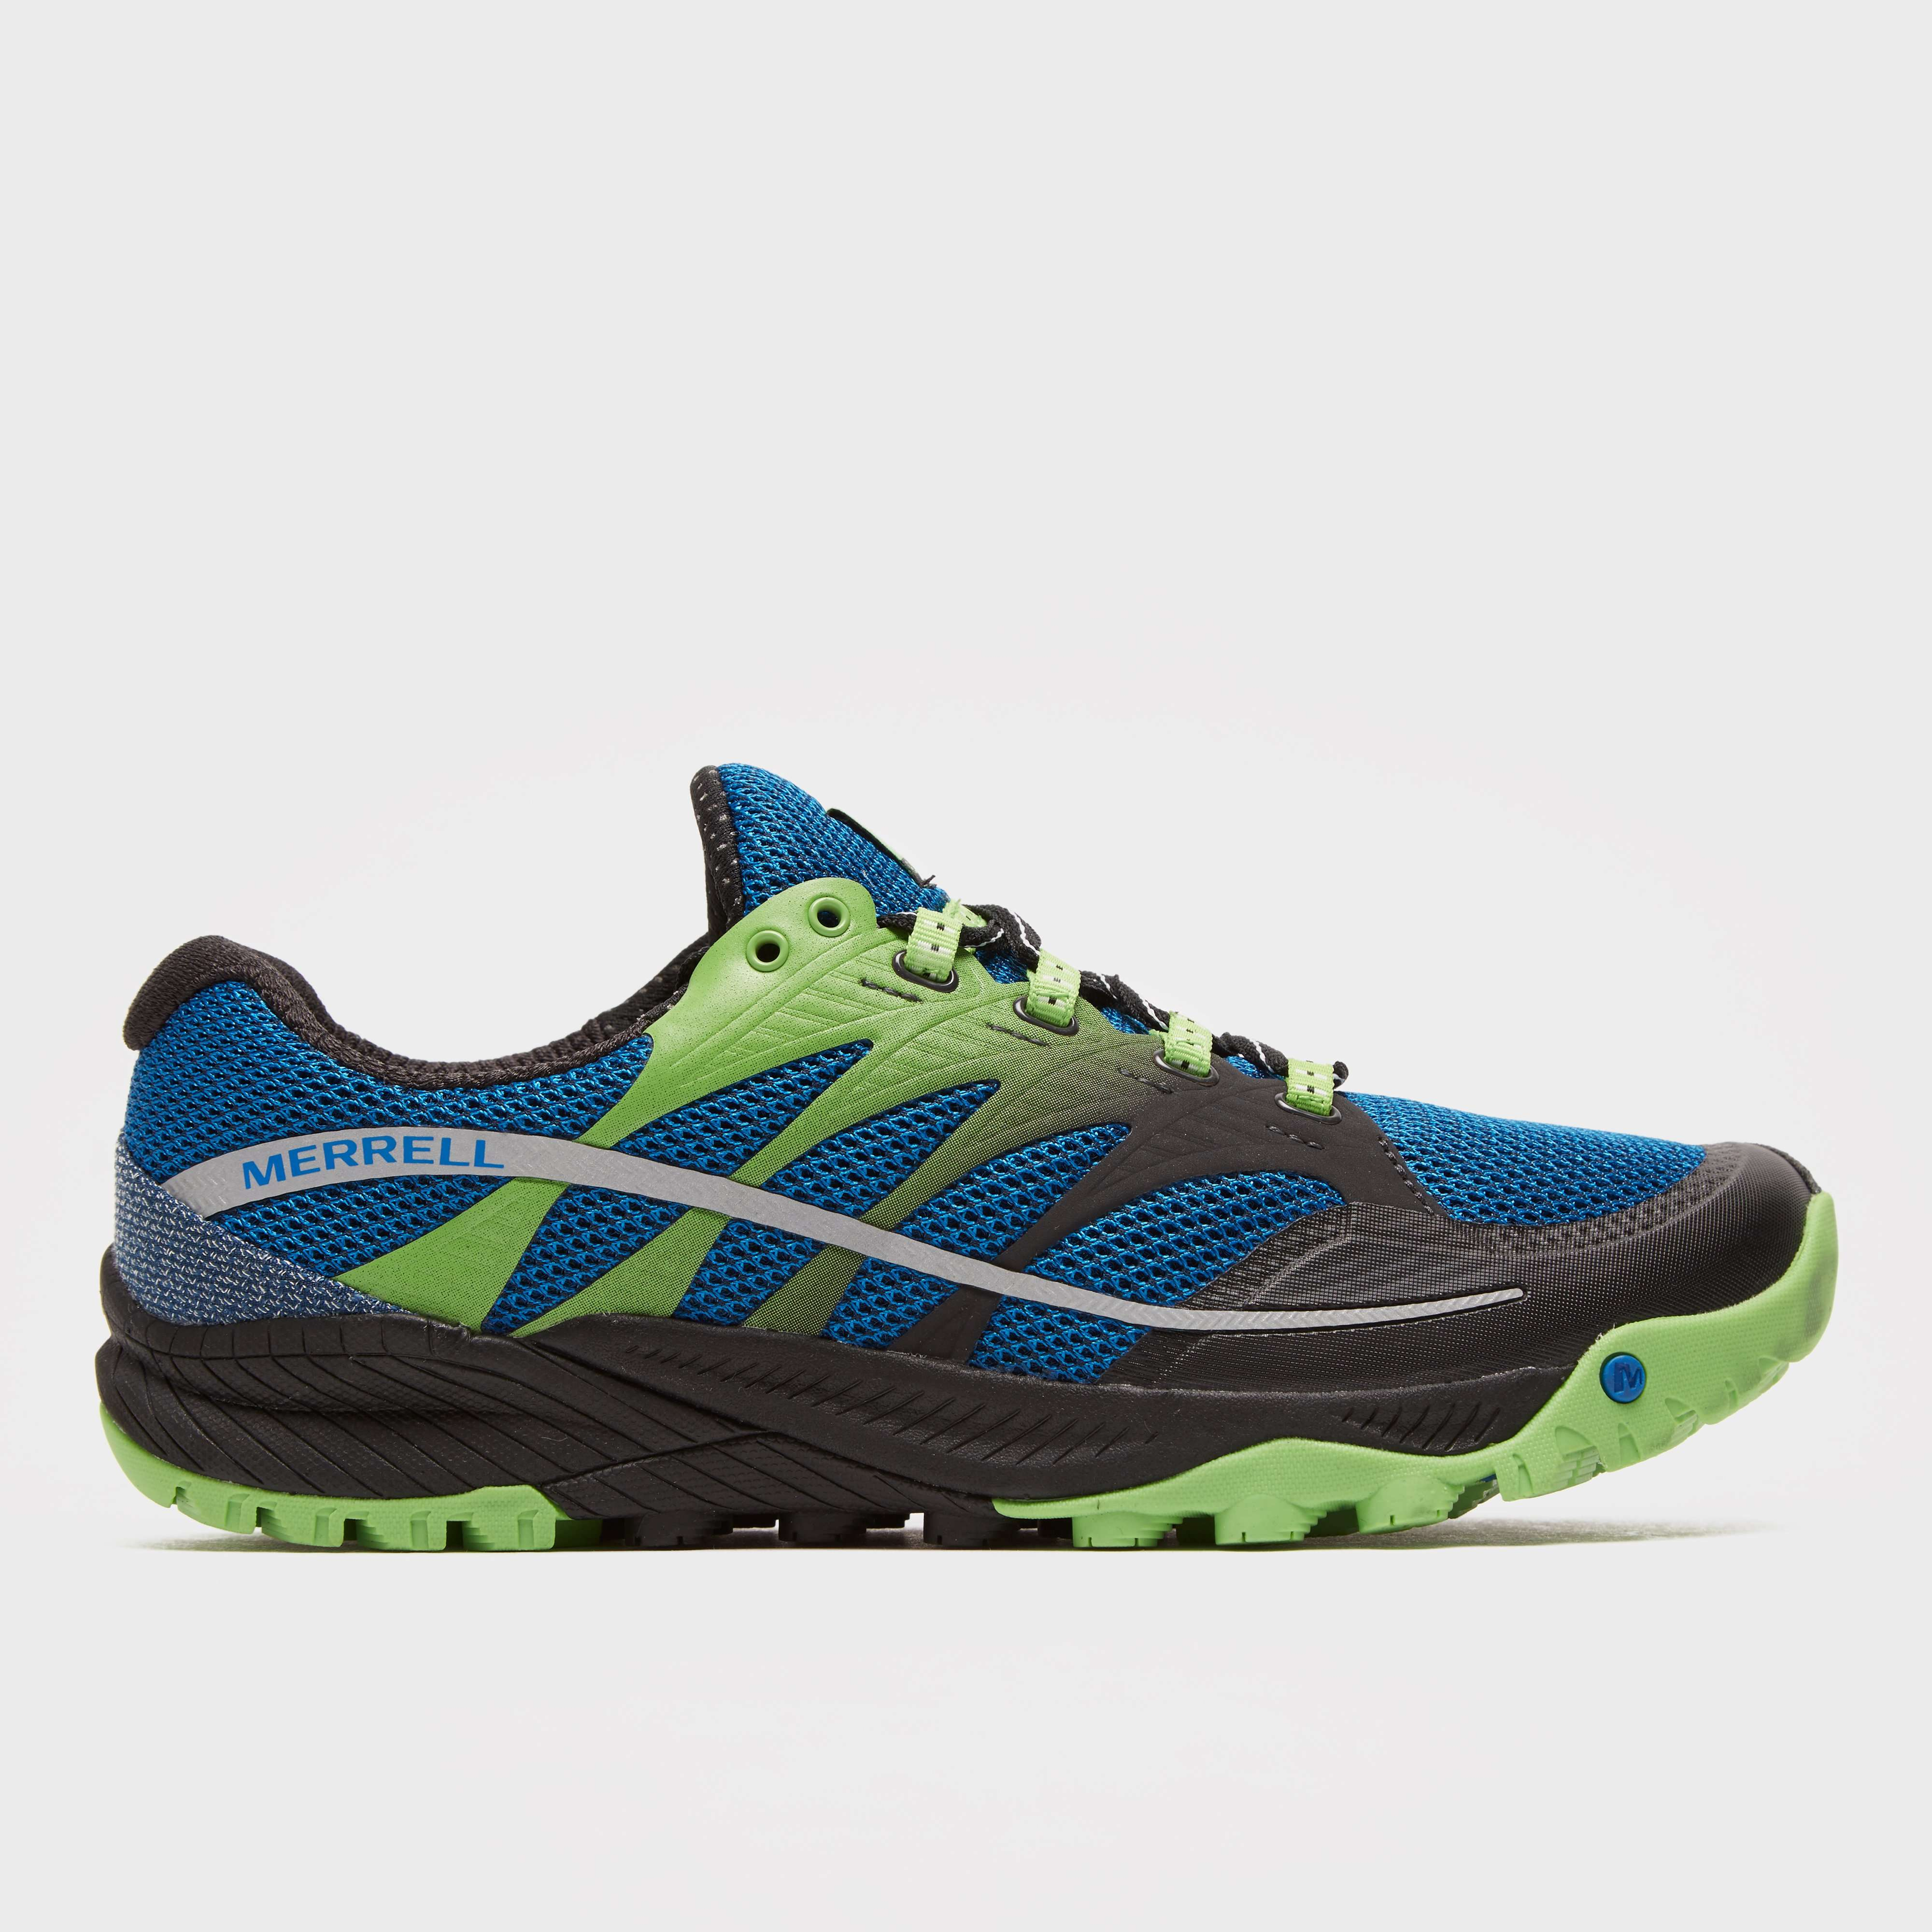 MERRELL Men's All Out Charge Shoes